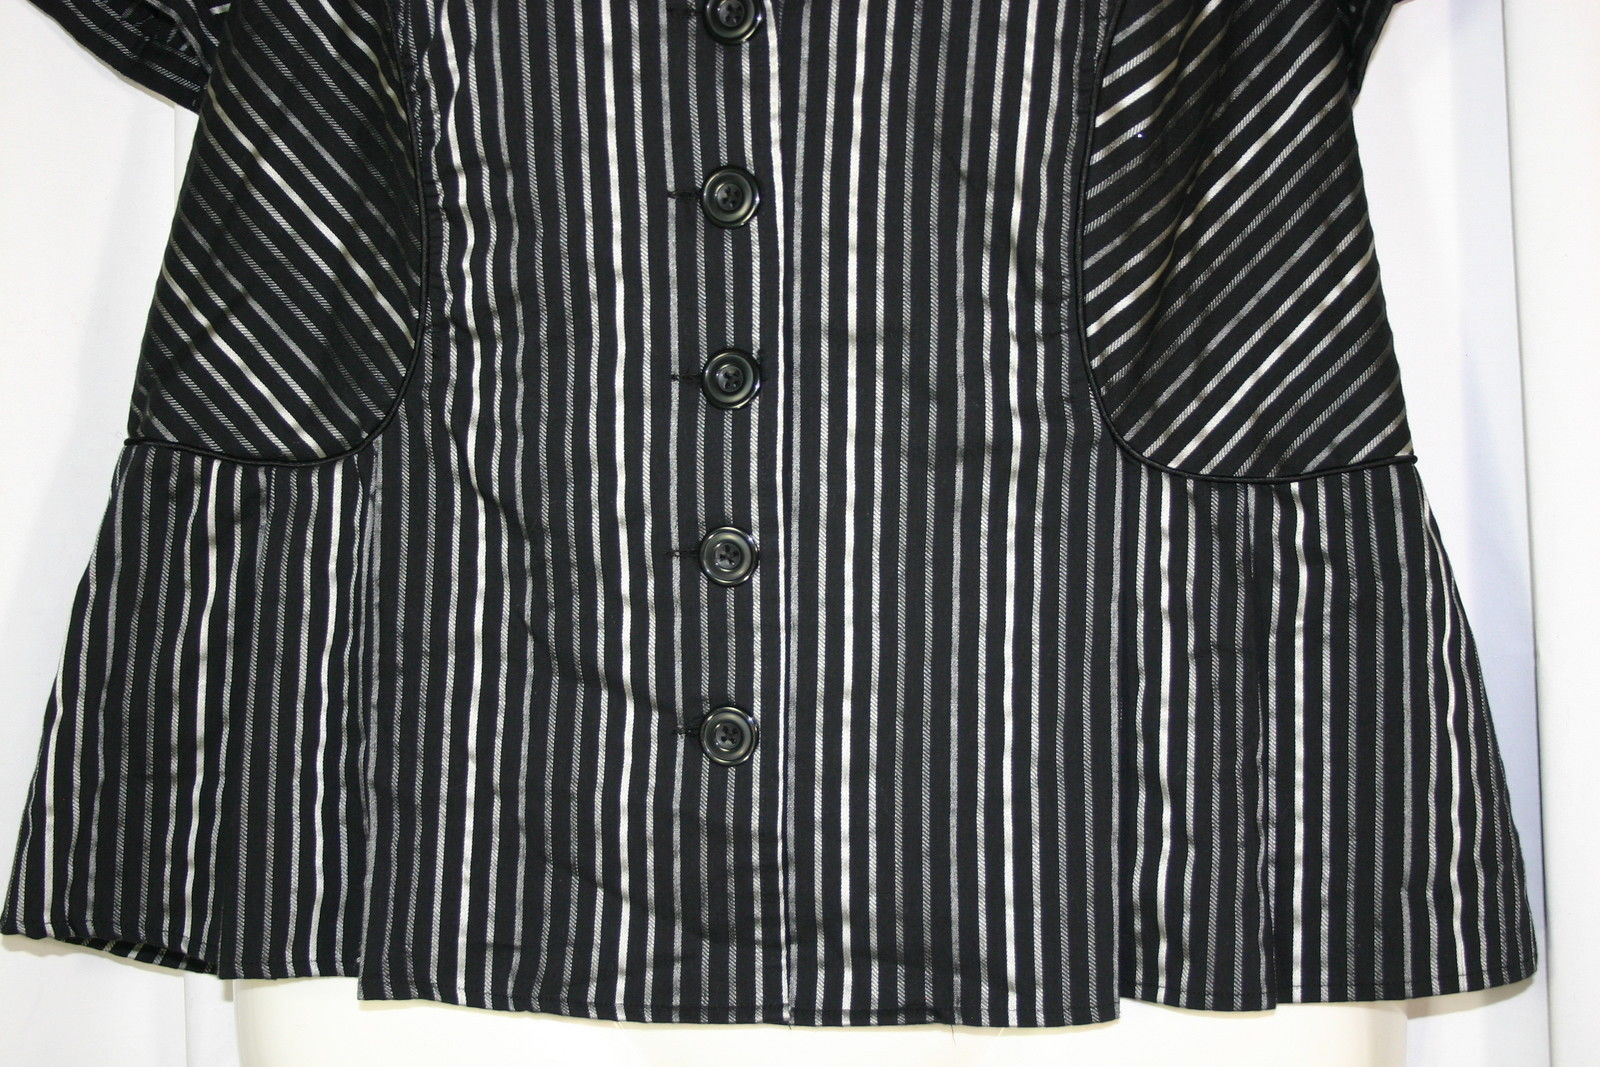 4f4dedc9 LANE BRYANT Plus 14/16 Black Gray Striped Button Front Short Sleeve Shirt  Top